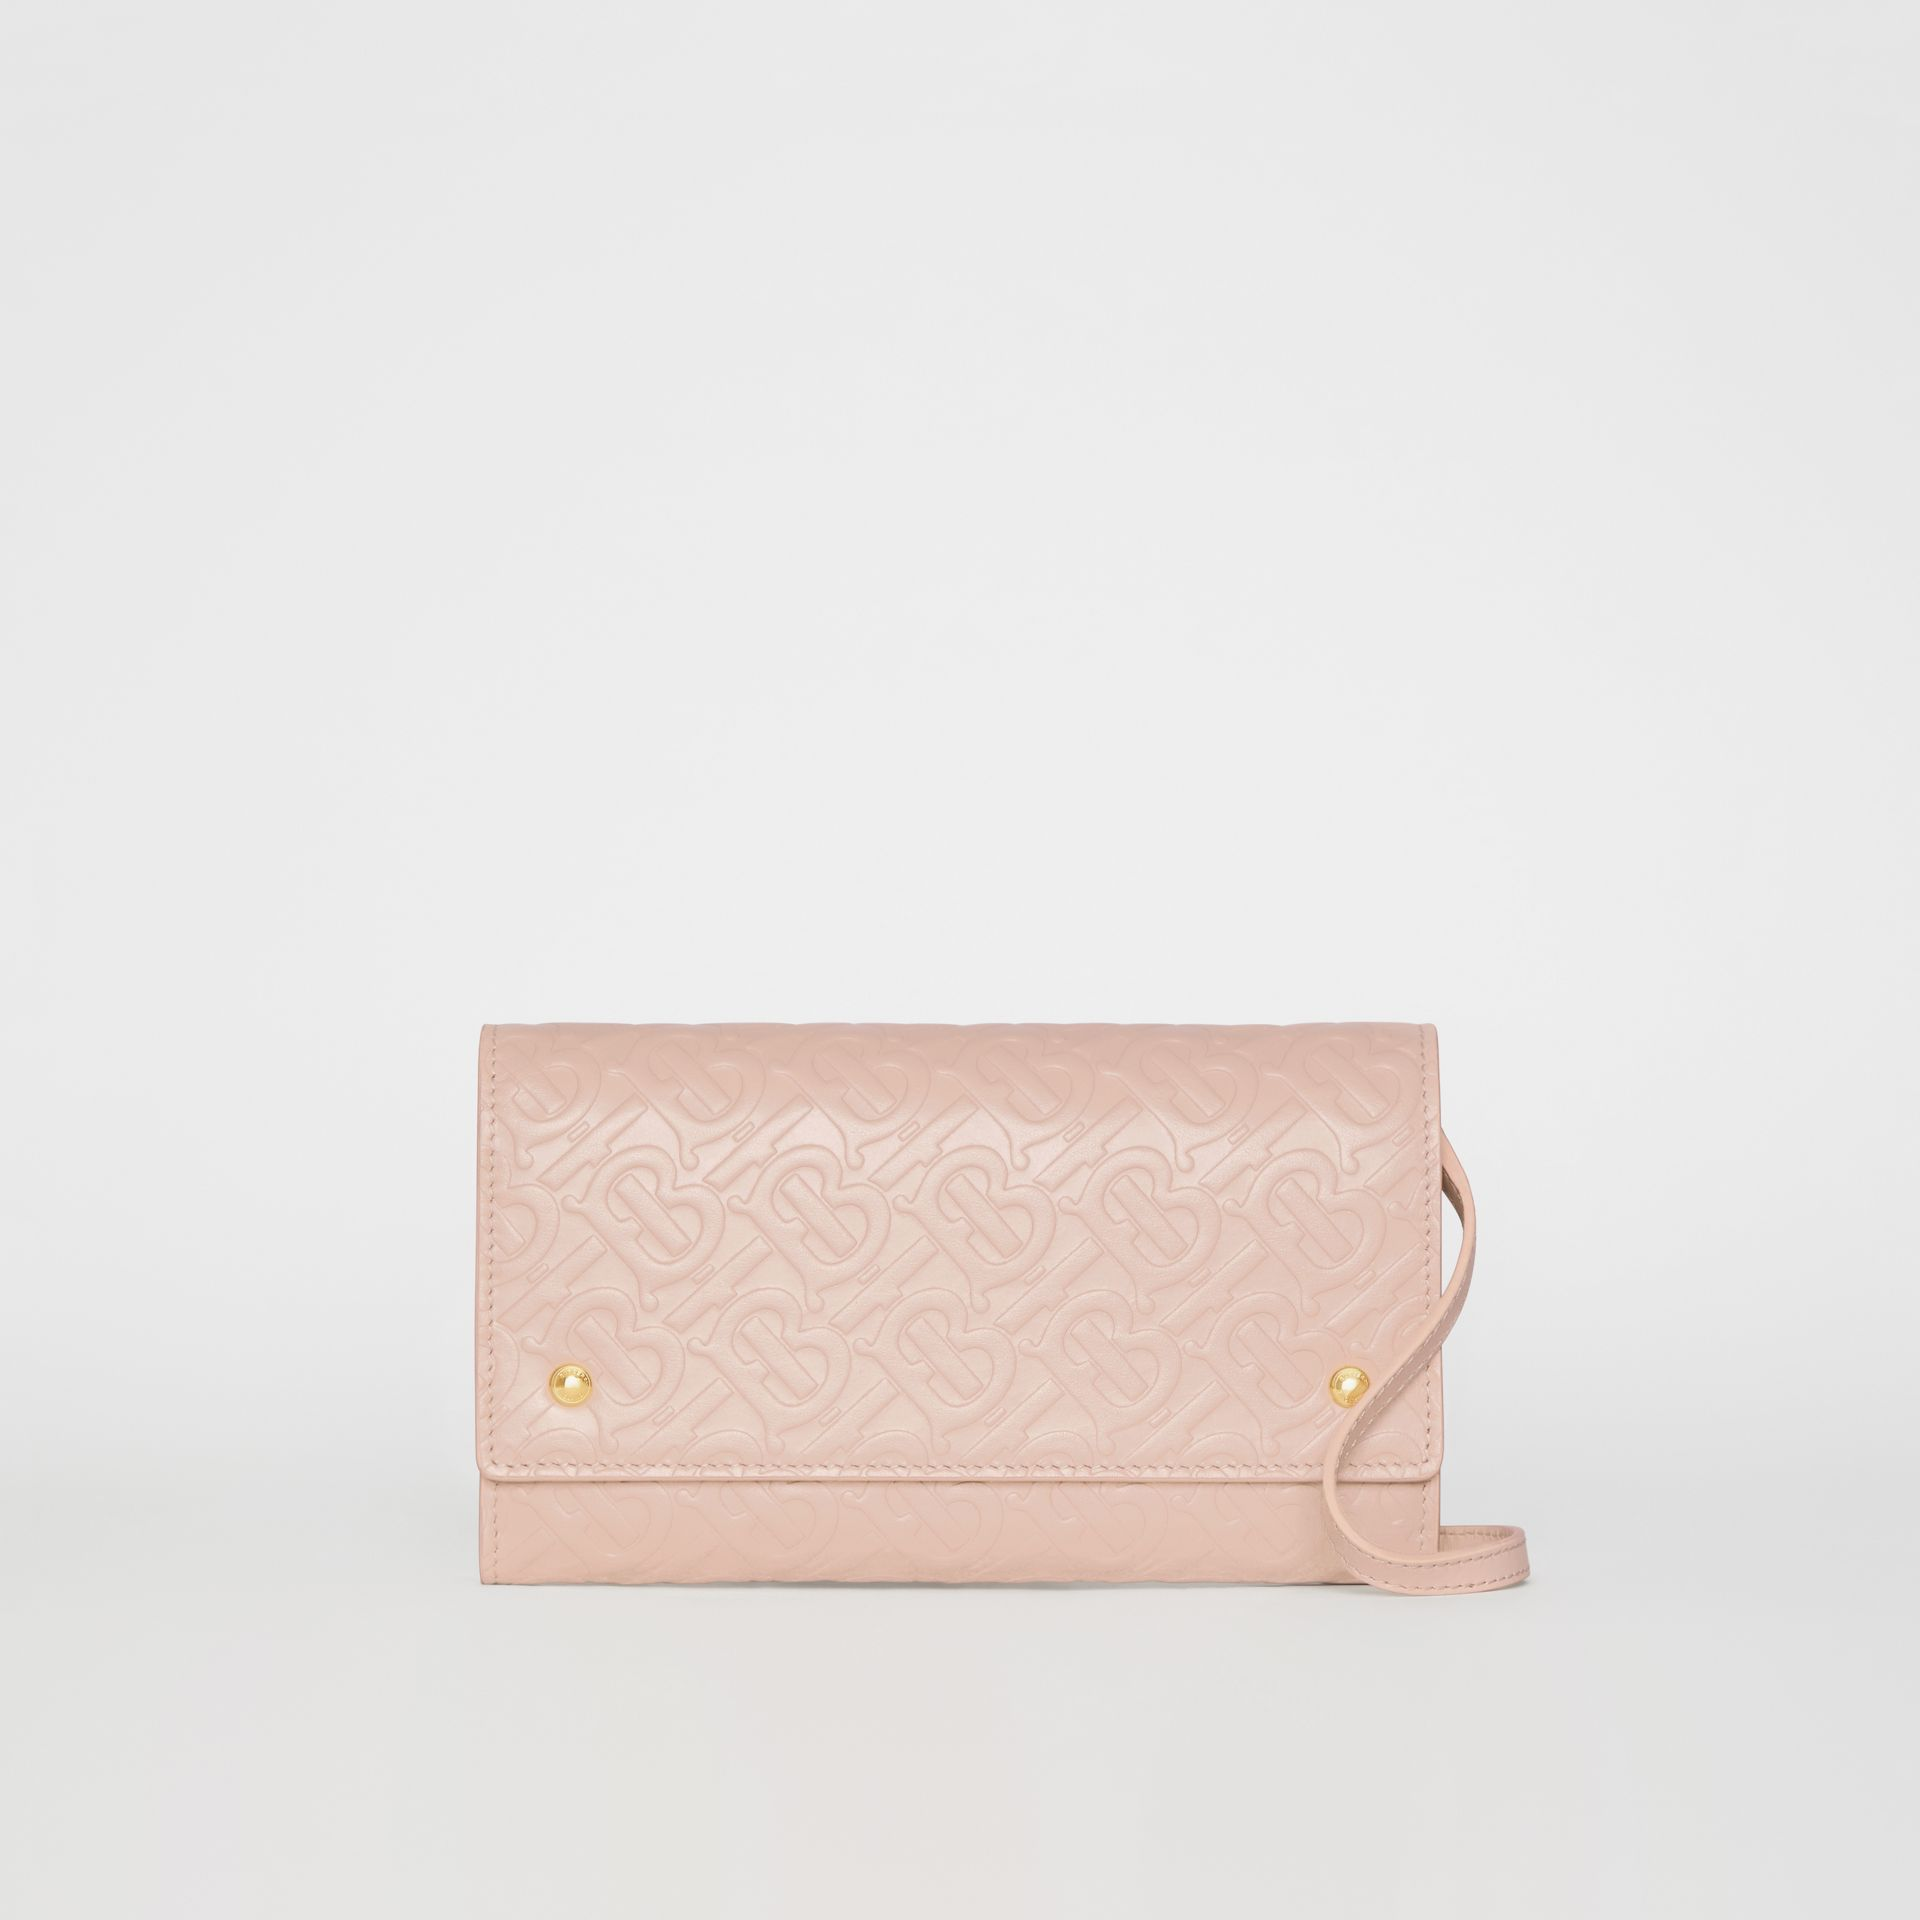 Monogram Leather Wallet with Detachable Strap in Rose Beige - Women | Burberry Singapore - gallery image 0